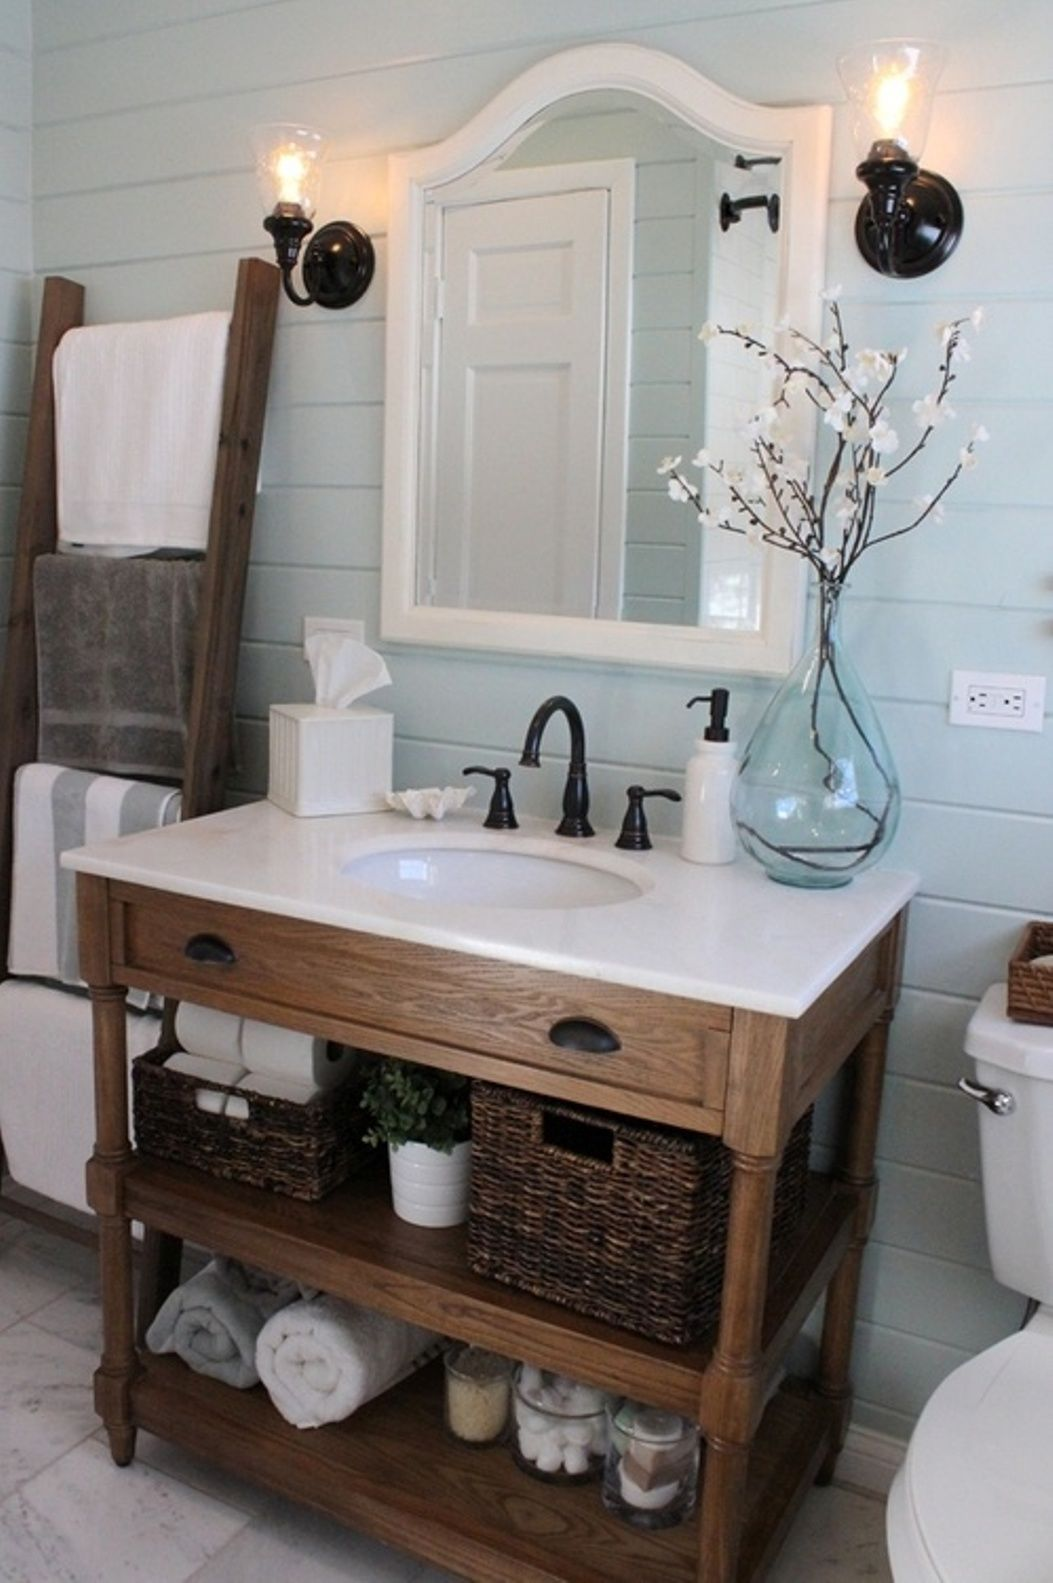 Cuarto Baño Rustico 31 Gorgeous Rustic Bathroom Decor Ideas To Try At Home